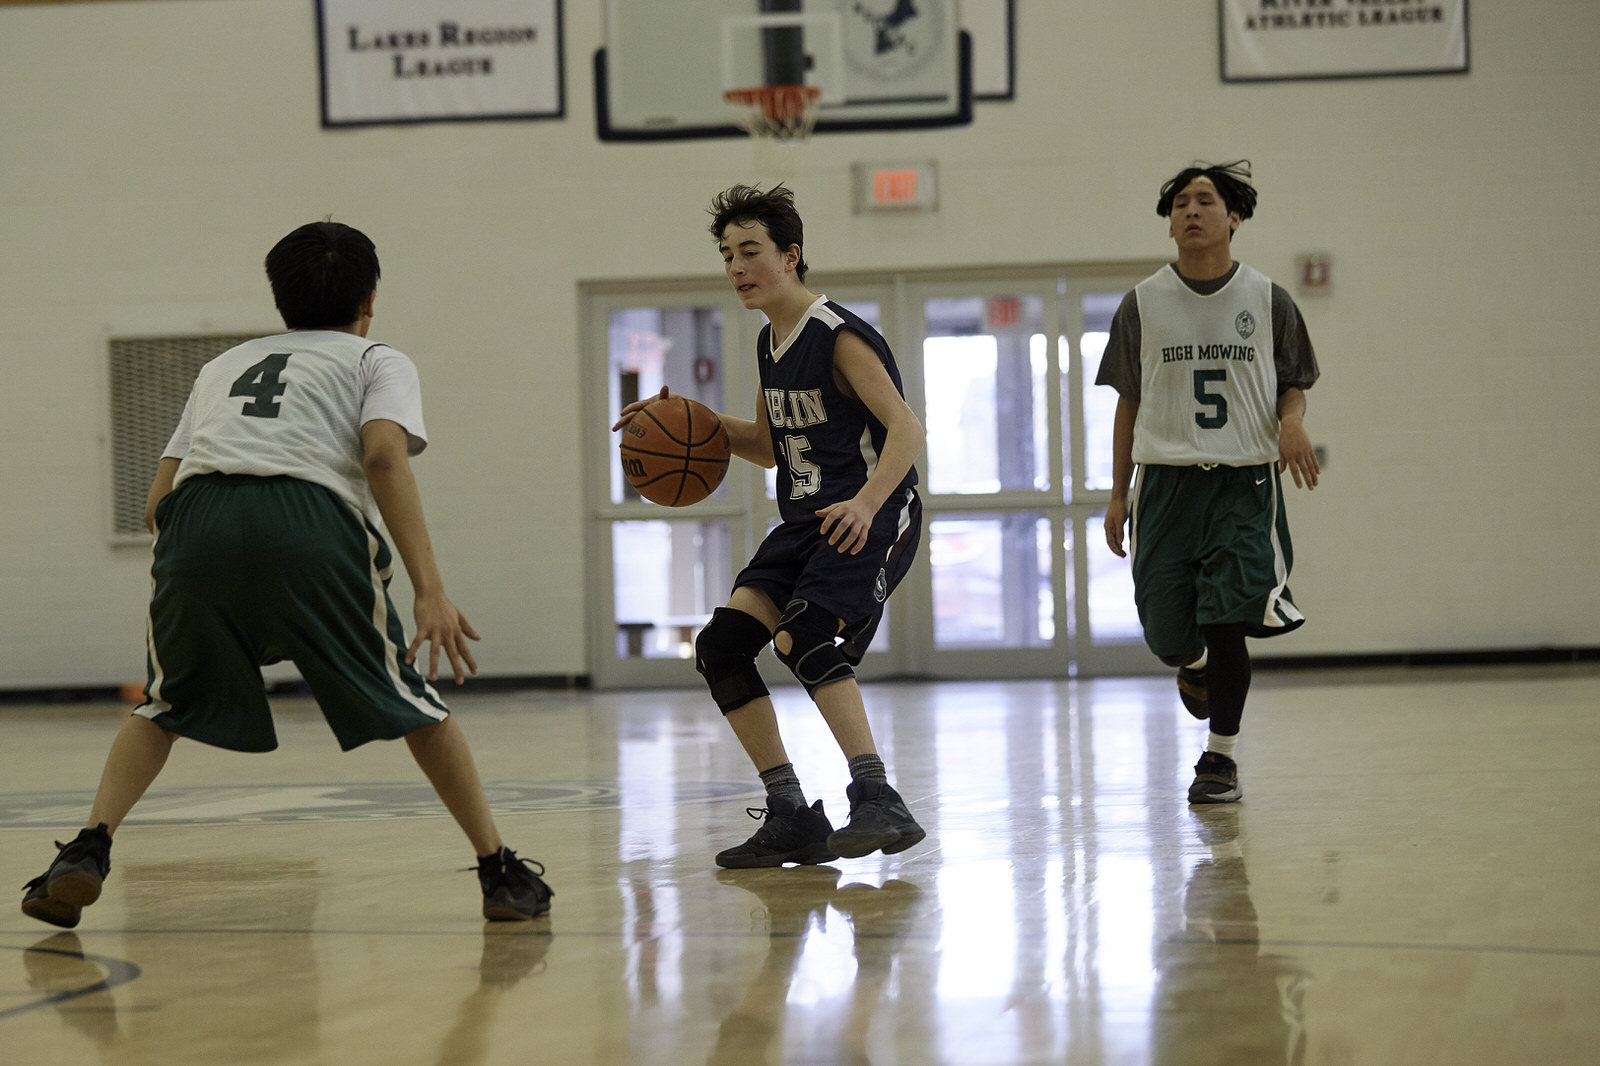 Dublin JV Boys Basketball vs High Mowing School - Jan 26 2019 - 0195.jpg